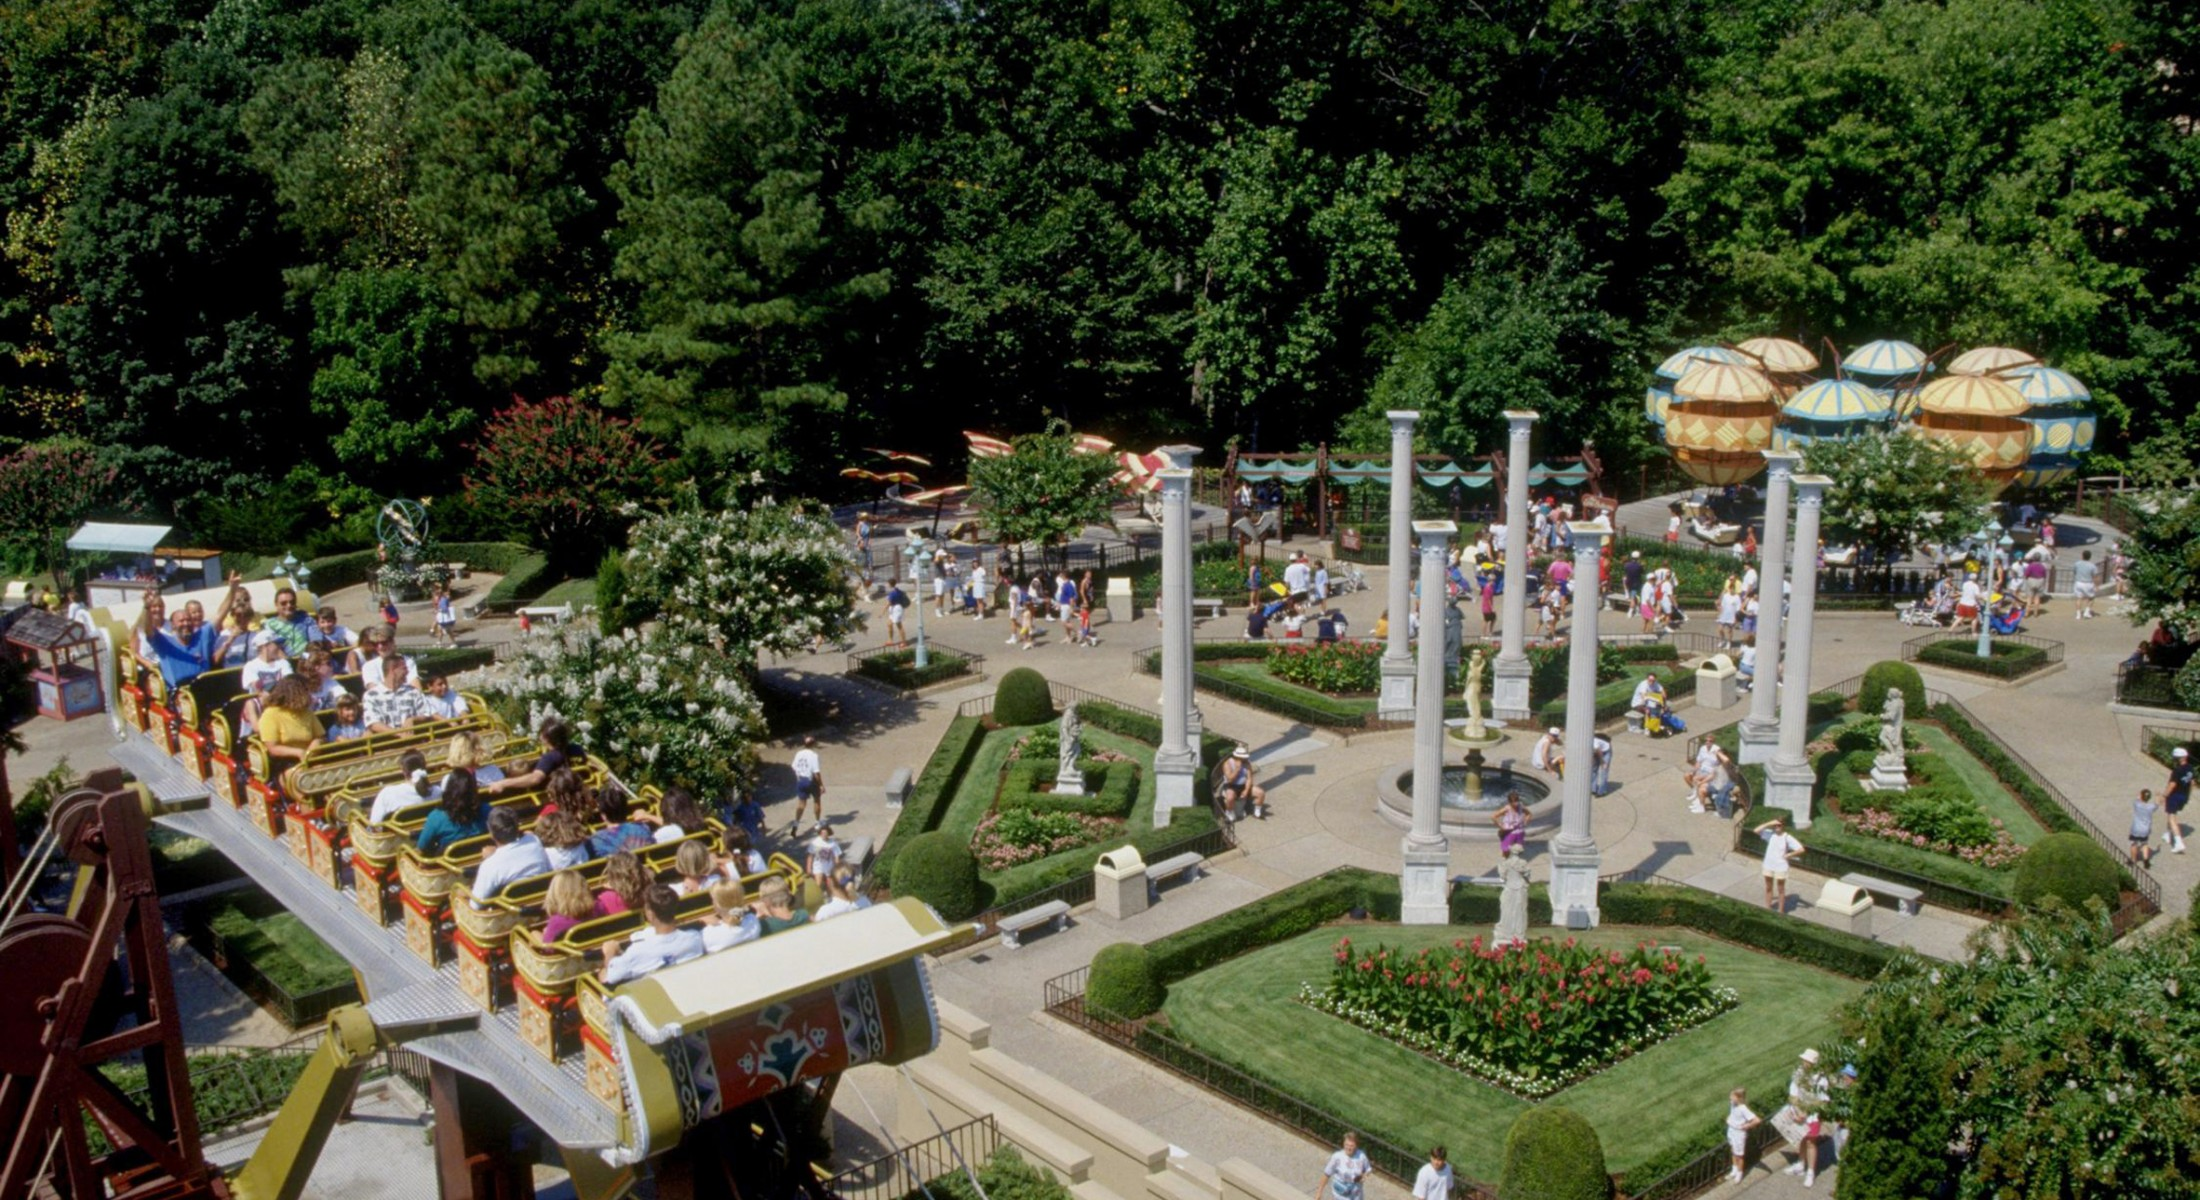 At Da Vinci's Garden of Inventions at Busch Gardens® Williamsburg, guests find thrill rides that pay tribute to the genius of the 15th-century Italian artist and inventor Leonardo Da Vinci. ©2013 SeaWorld Parks & Entertainment, Inc. All Rights Reserved.